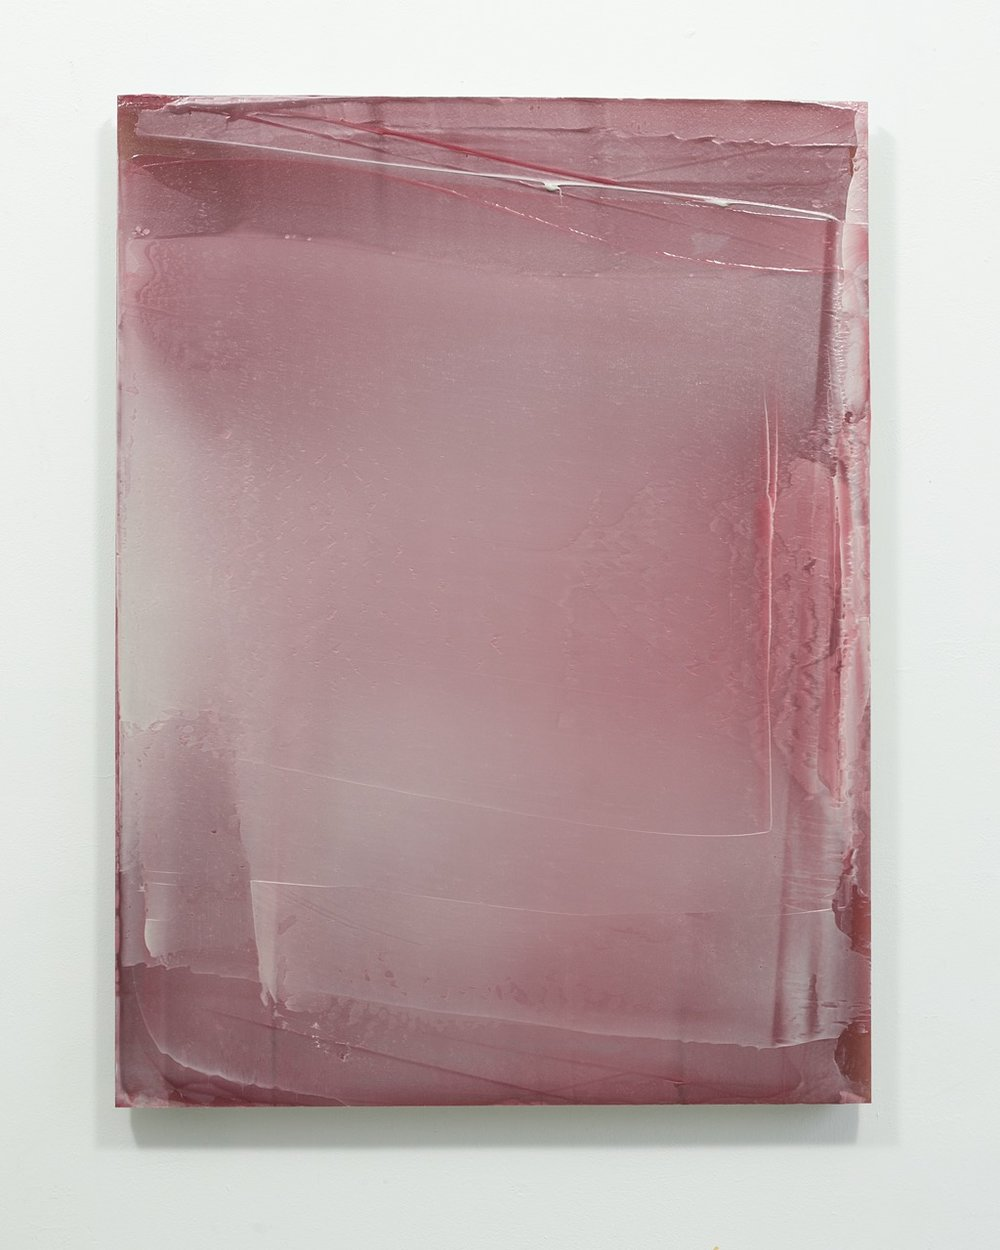 Medeci Red over White, 2014, 90x65cm.jpg